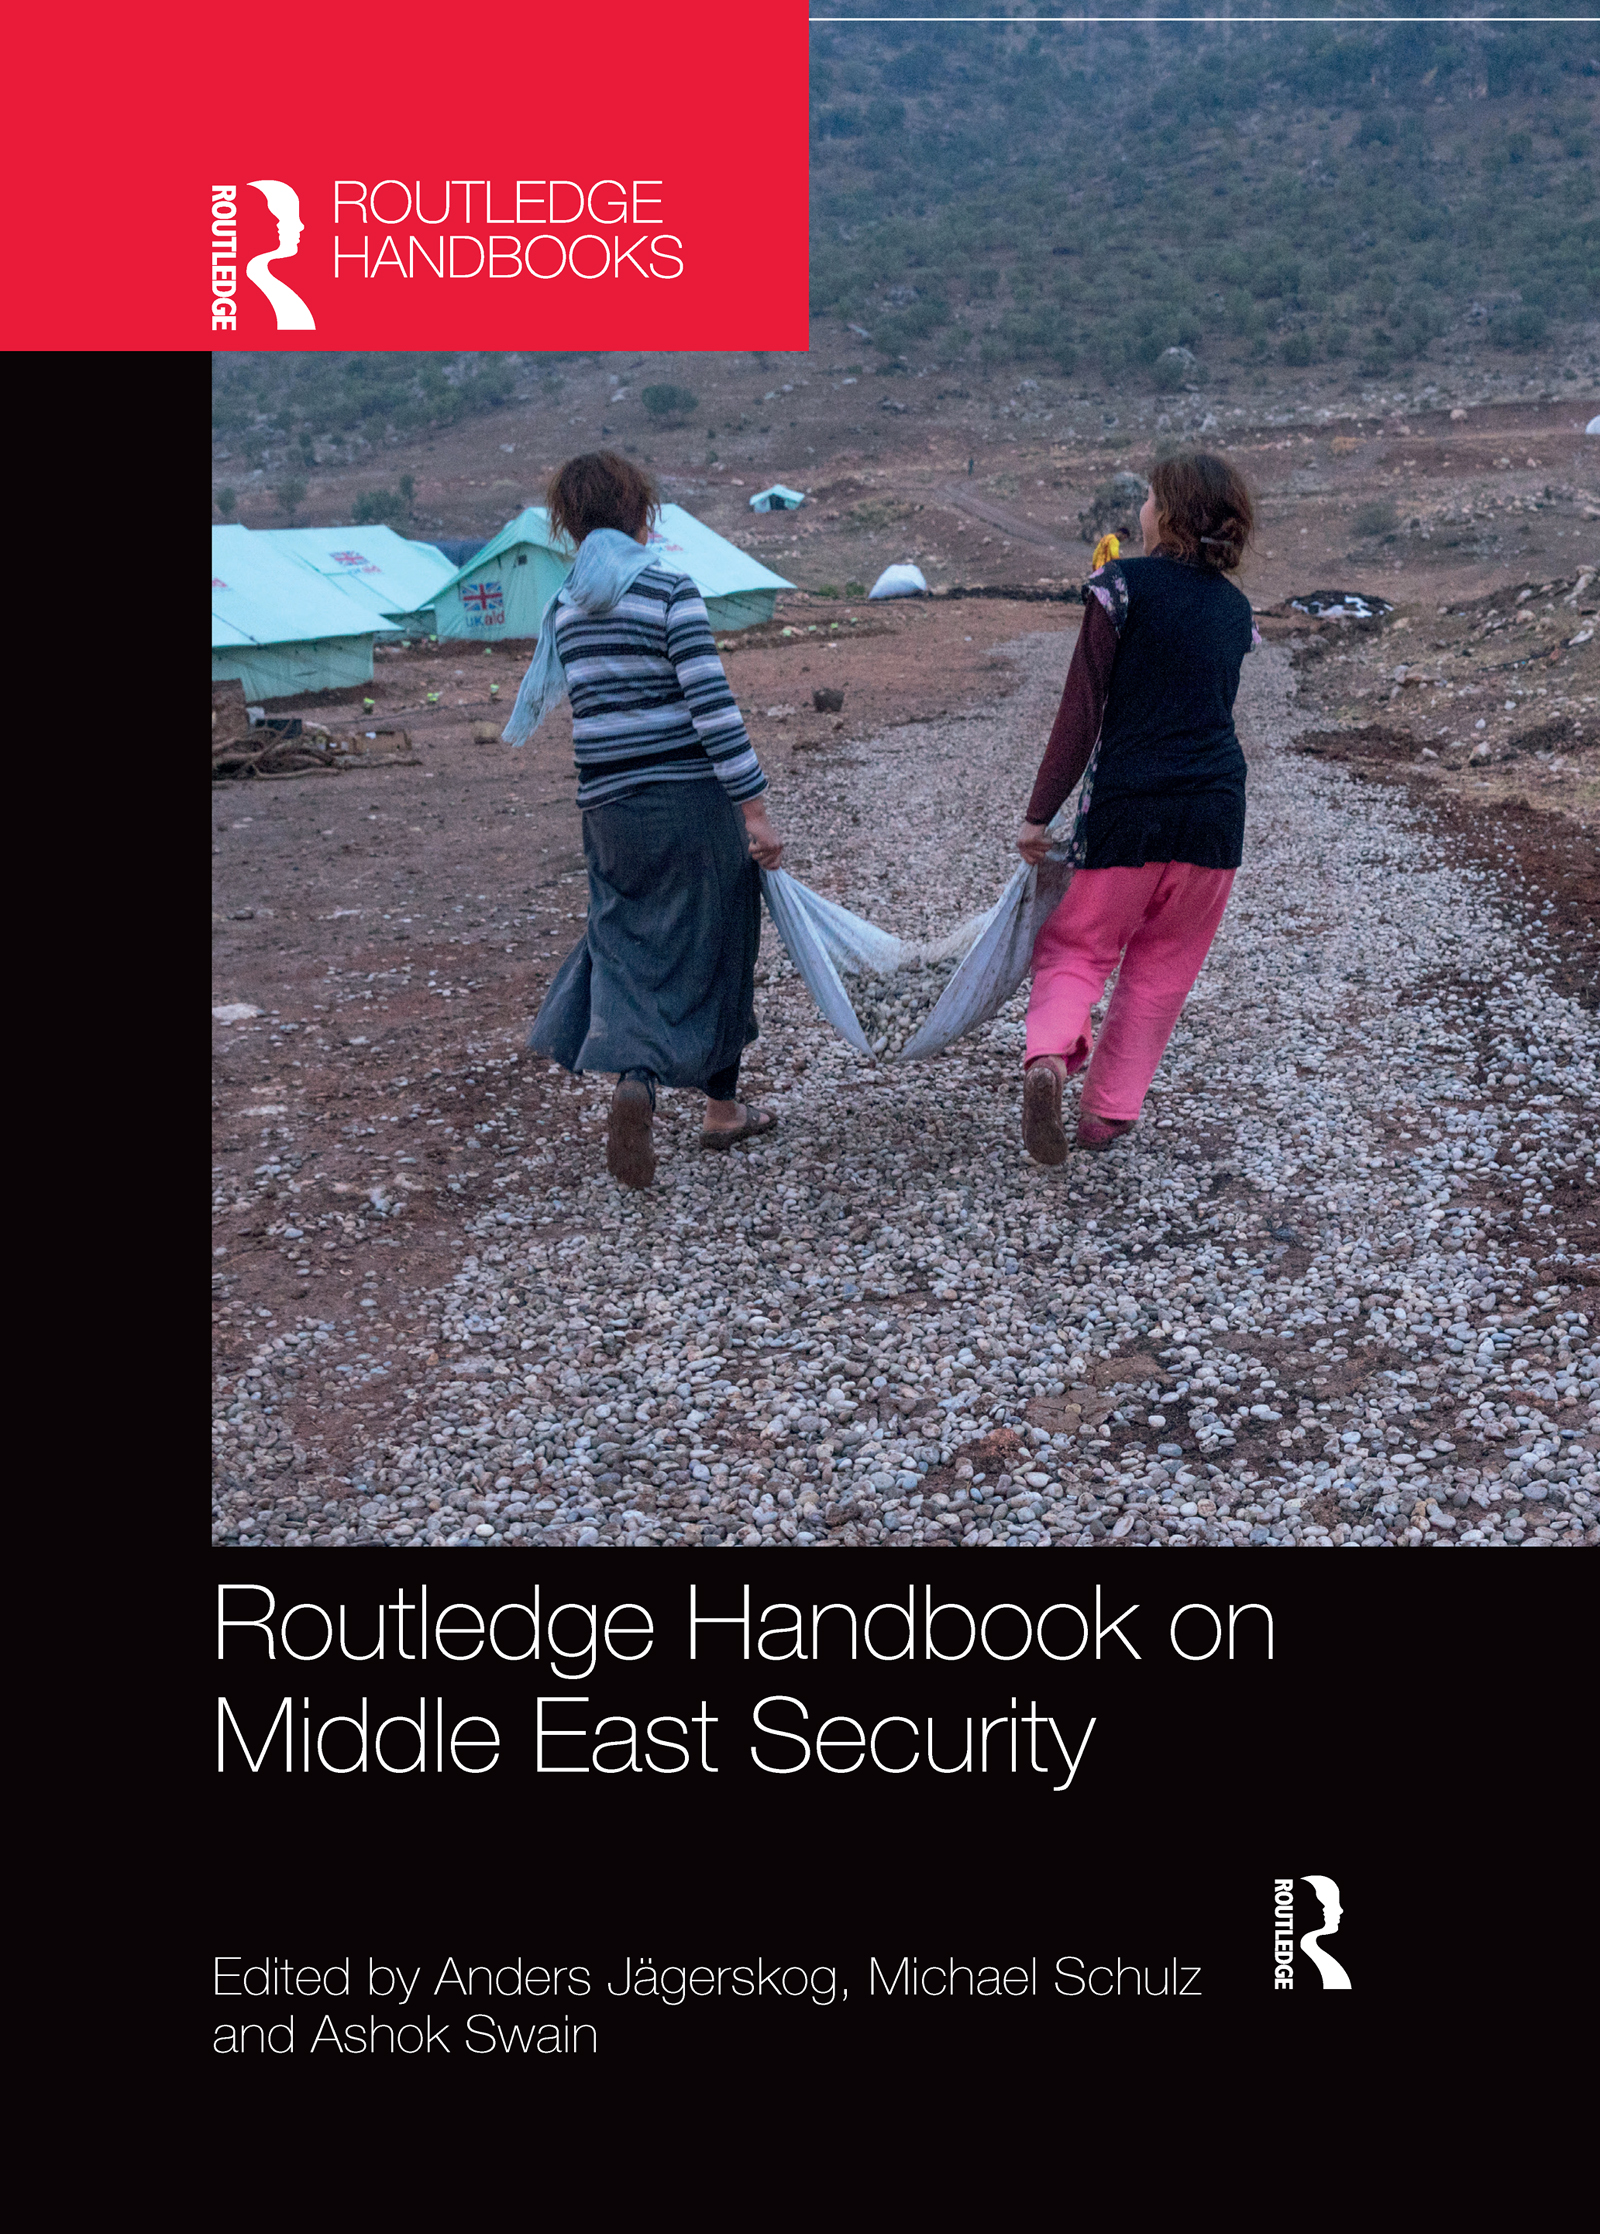 Routledge Handbook on Middle East Security